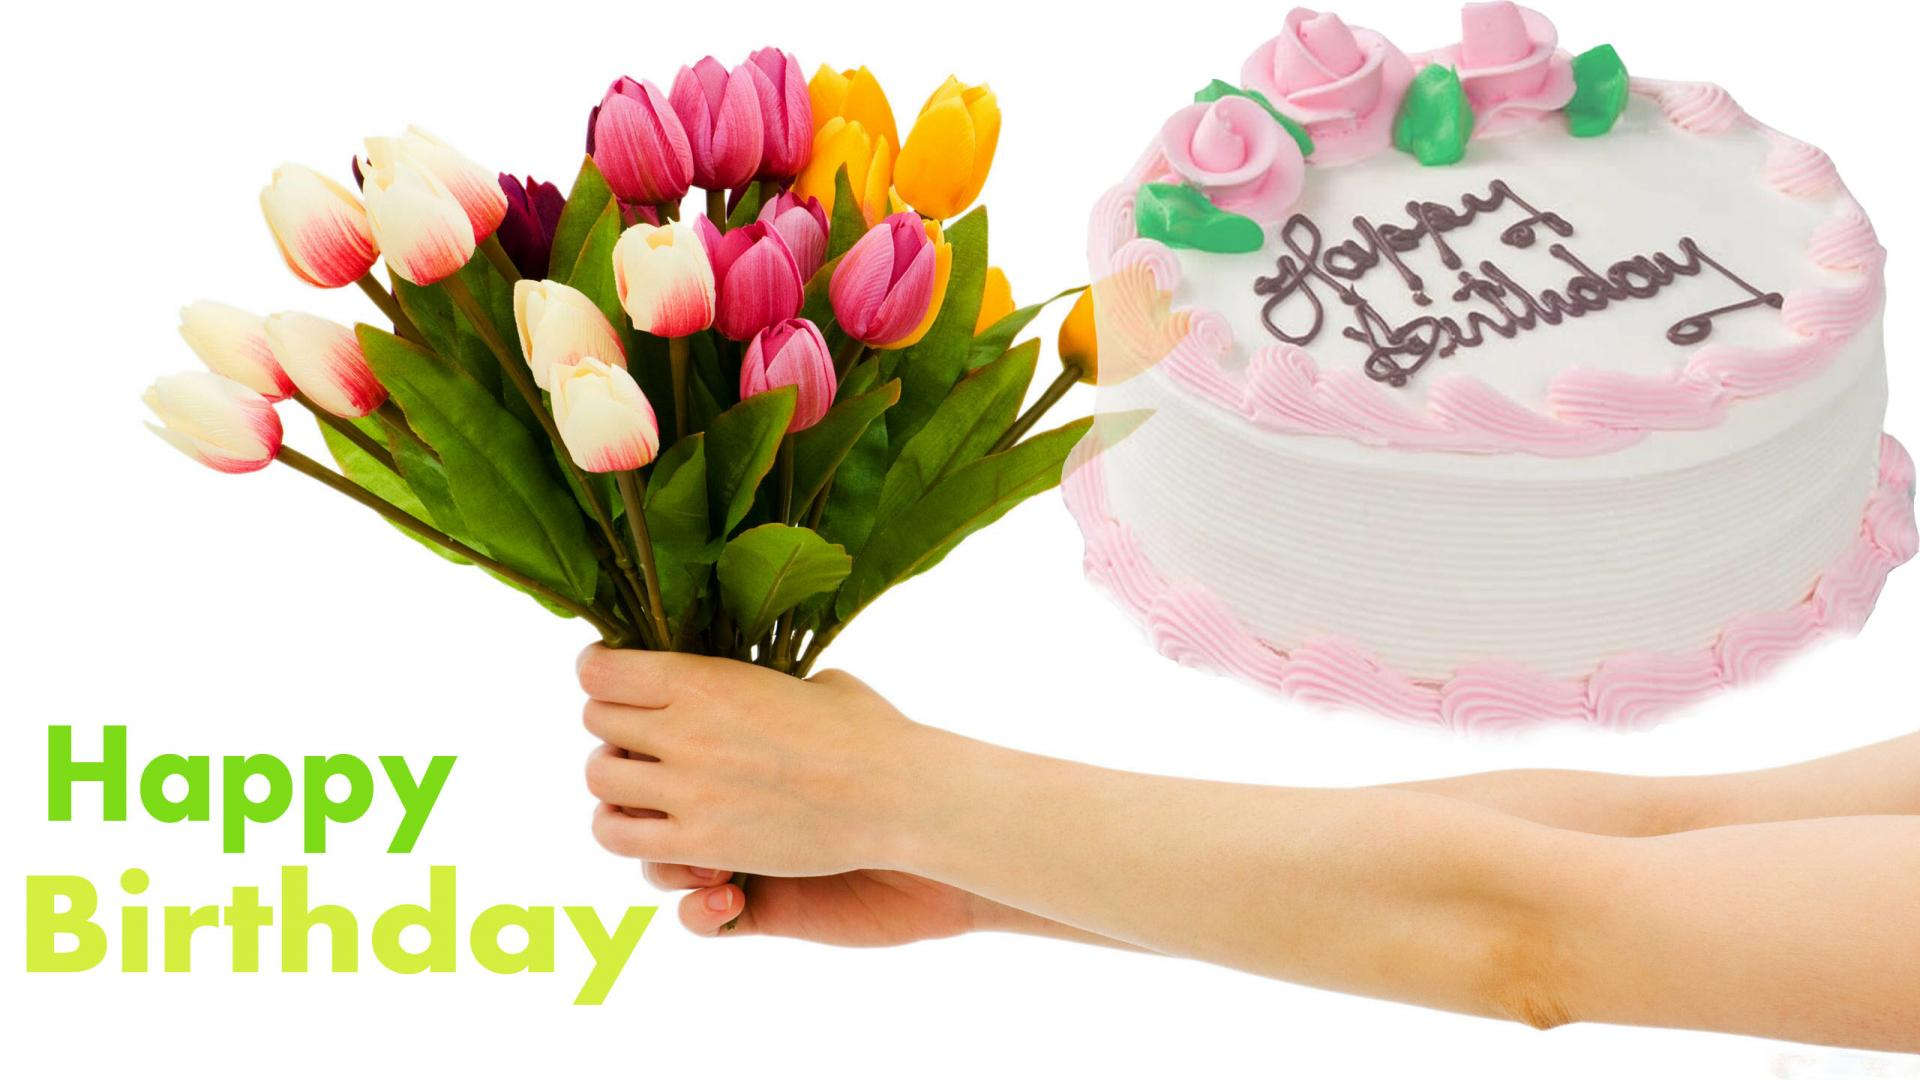 Happy Birthday Cake And Flowers Wallpaper HD Wallpapers 1920x1080